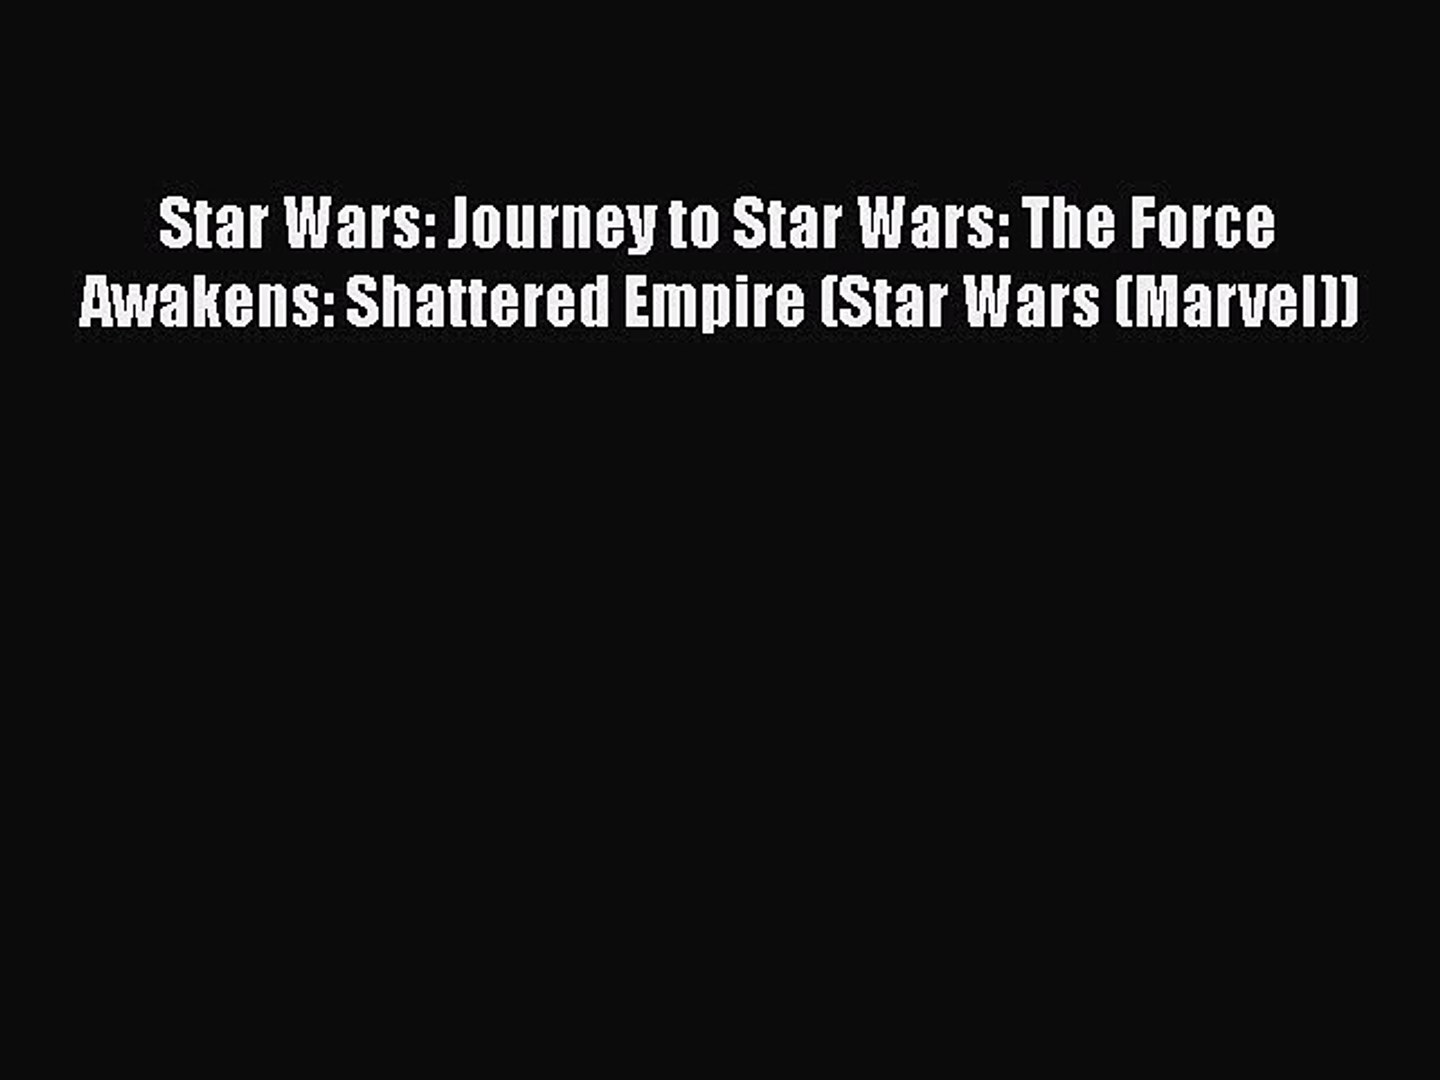 Download Star Wars: Journey to Star Wars: The Force Awakens: Shattered Empire (Star Wars (Marvel))